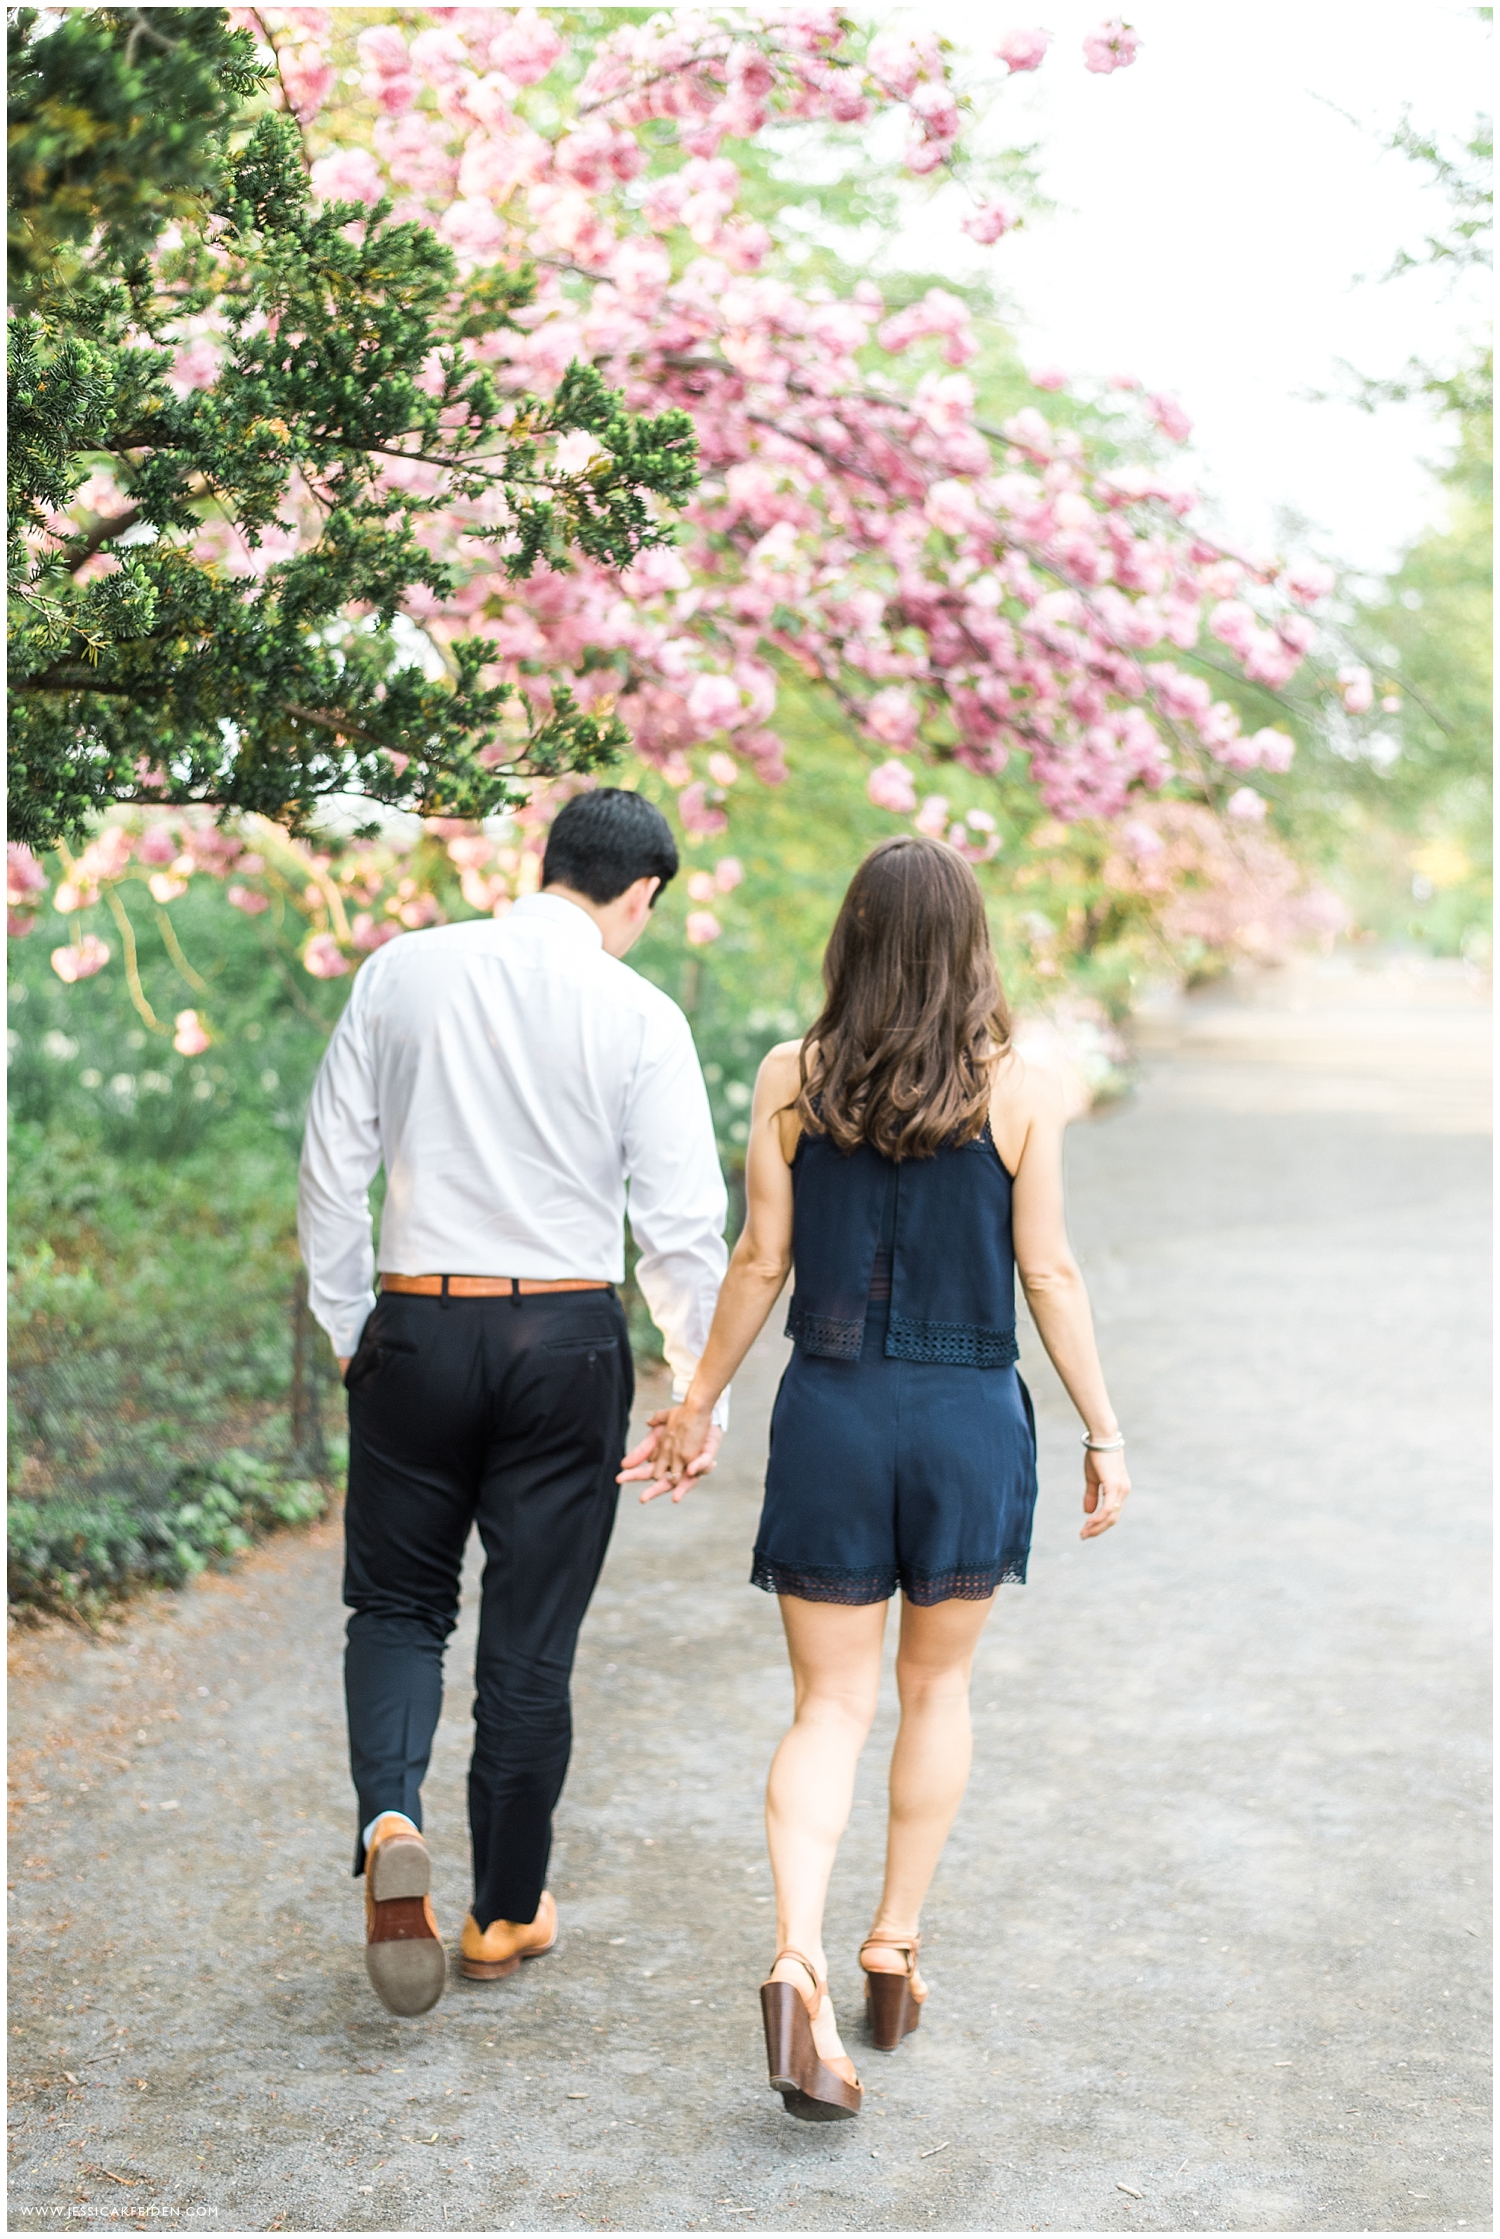 Jessica K Feiden Photography_Central Park NYC Engagement Session_0002.jpg